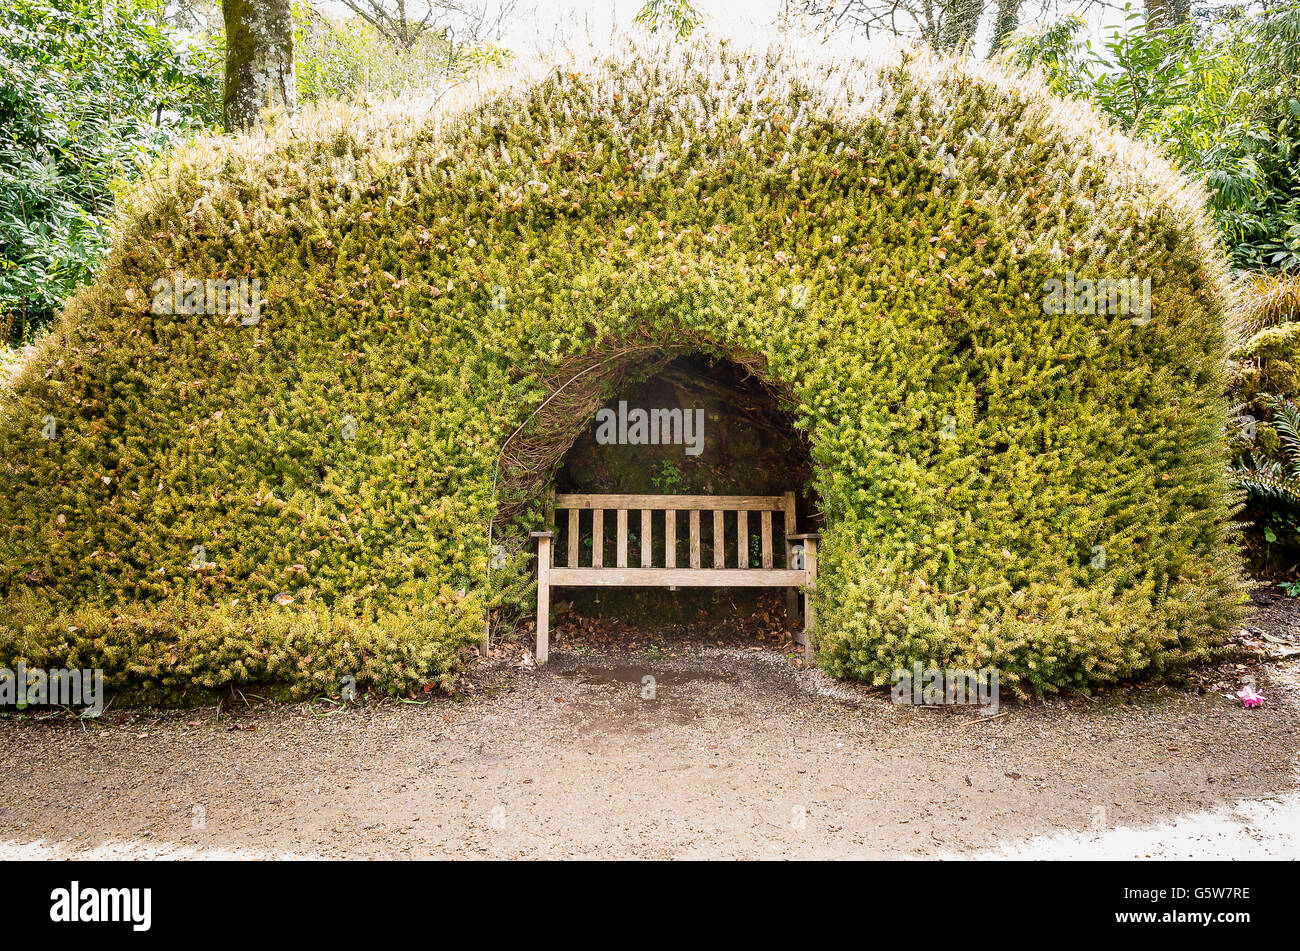 Secluded seat sheltered by yew in Trengwainton gardens UK - Stock Image